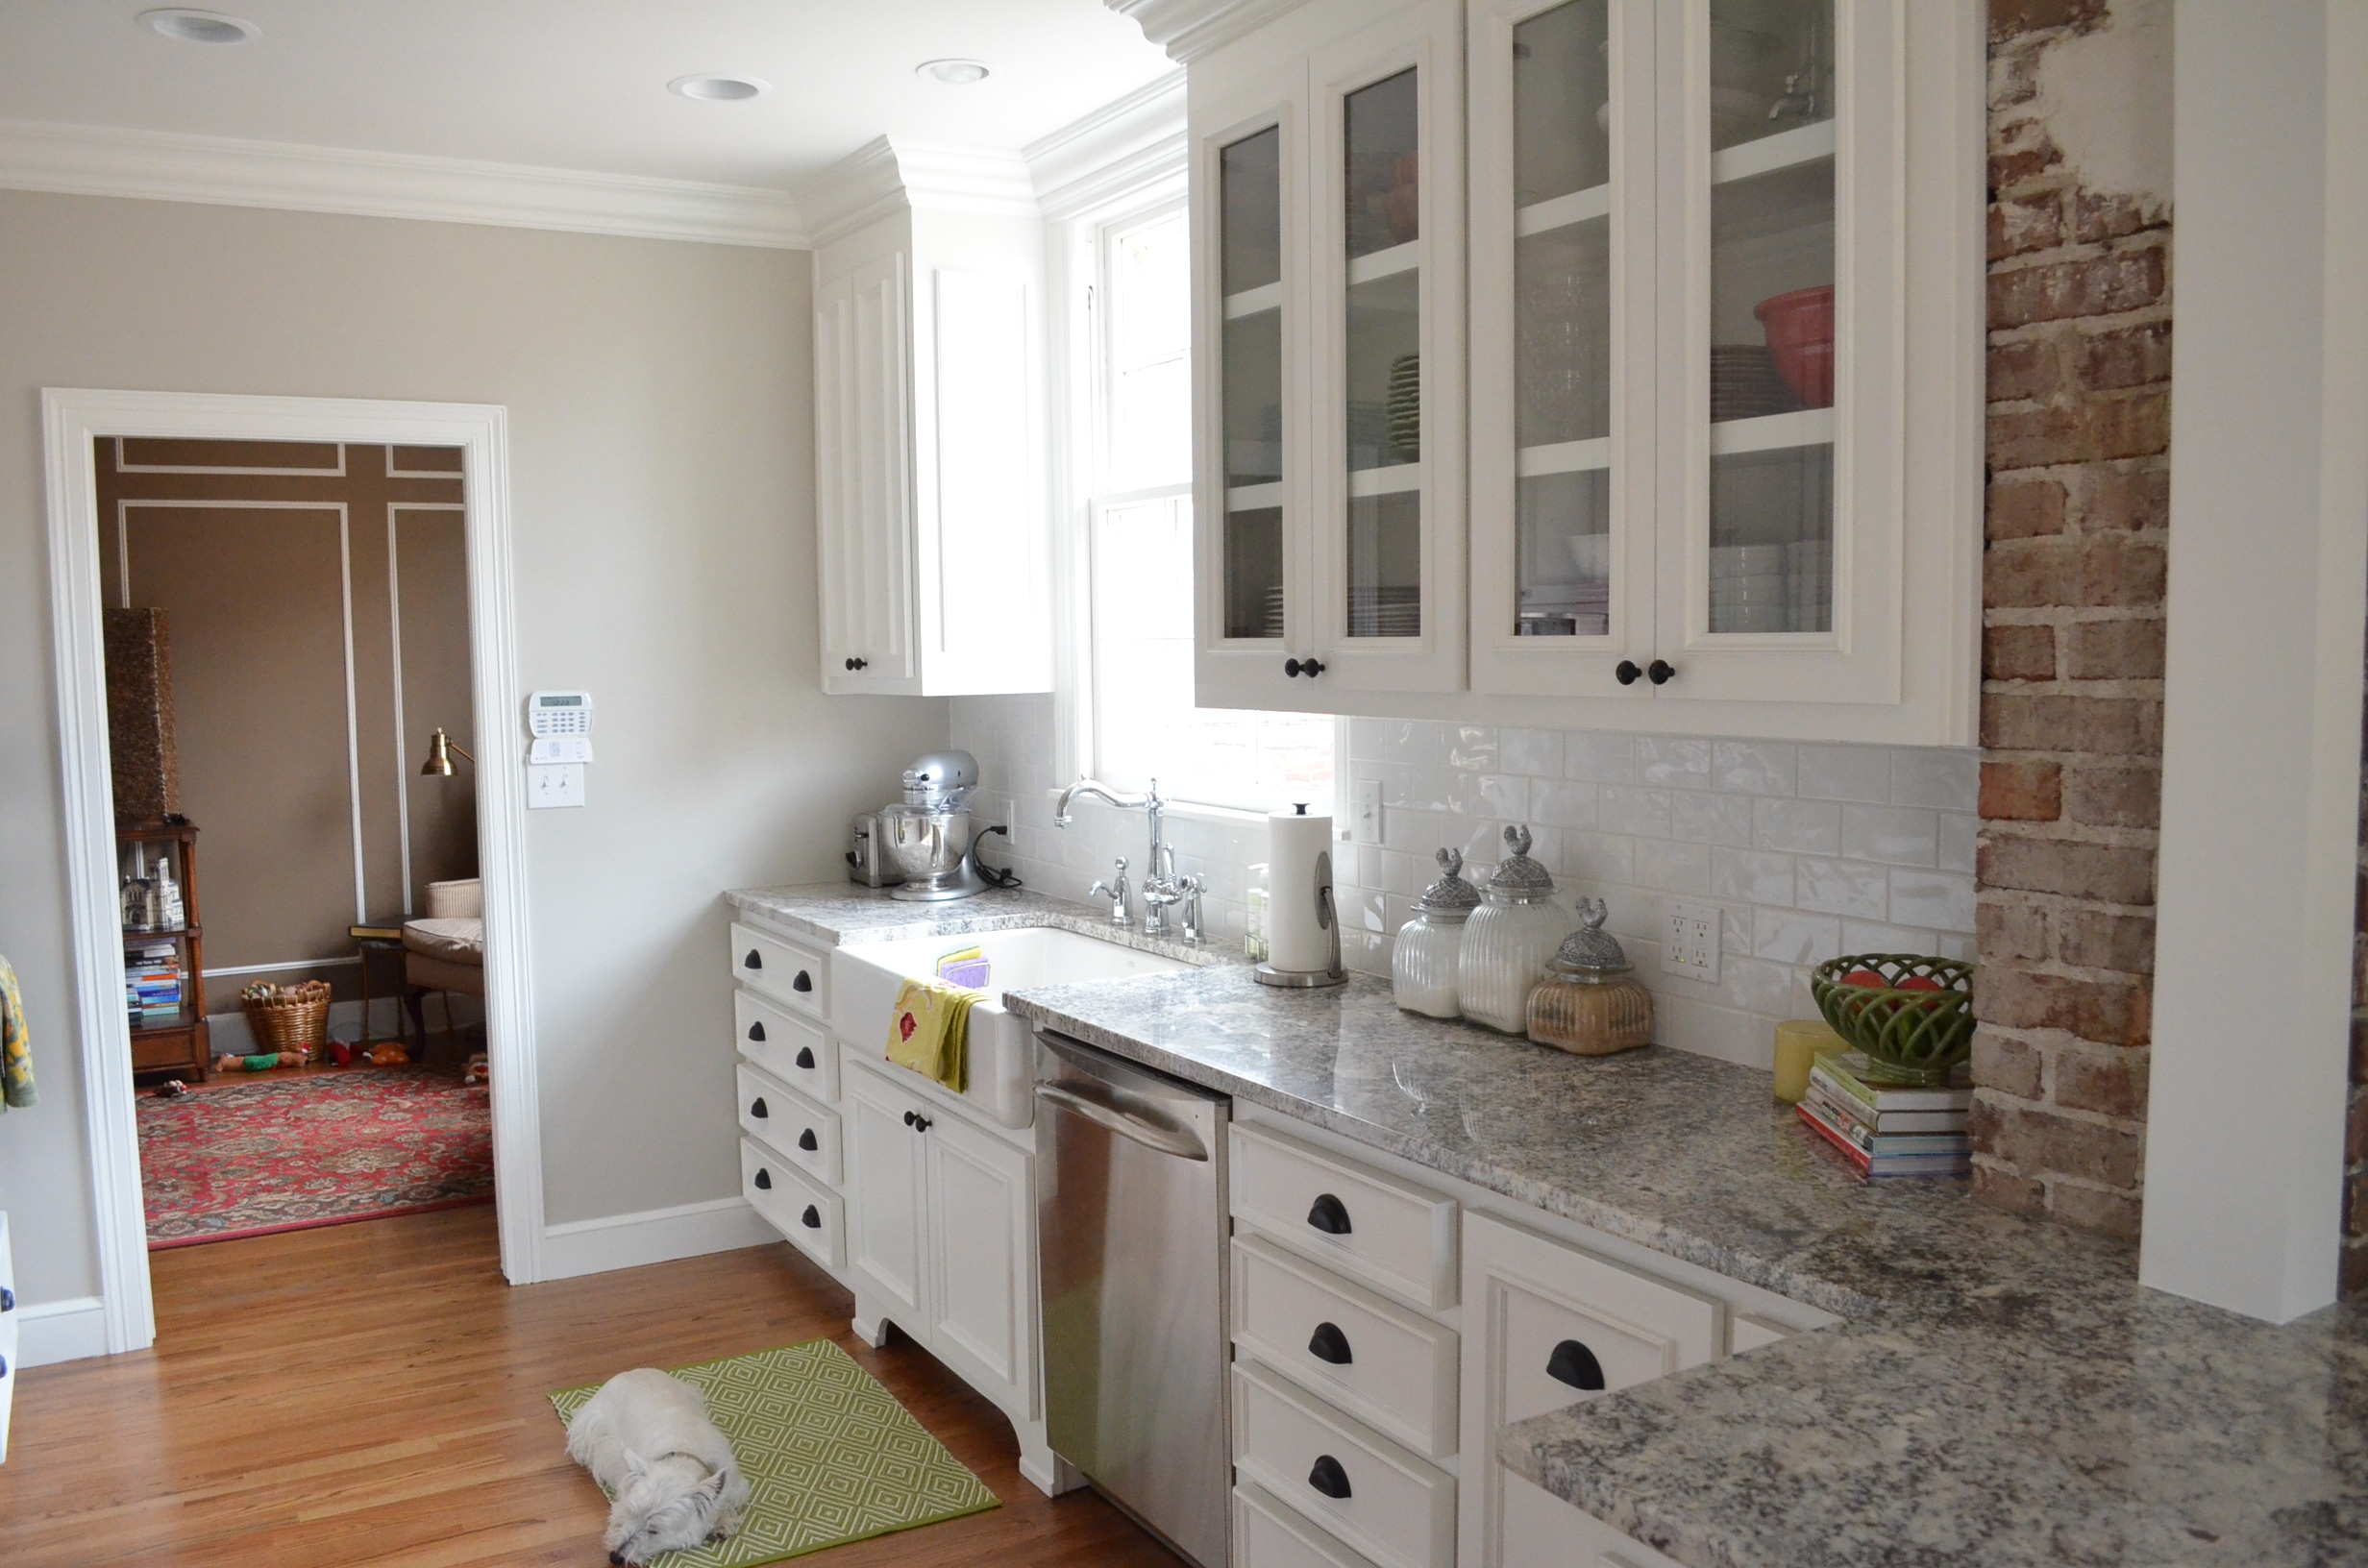 White Kitchen Cabinets With Molding